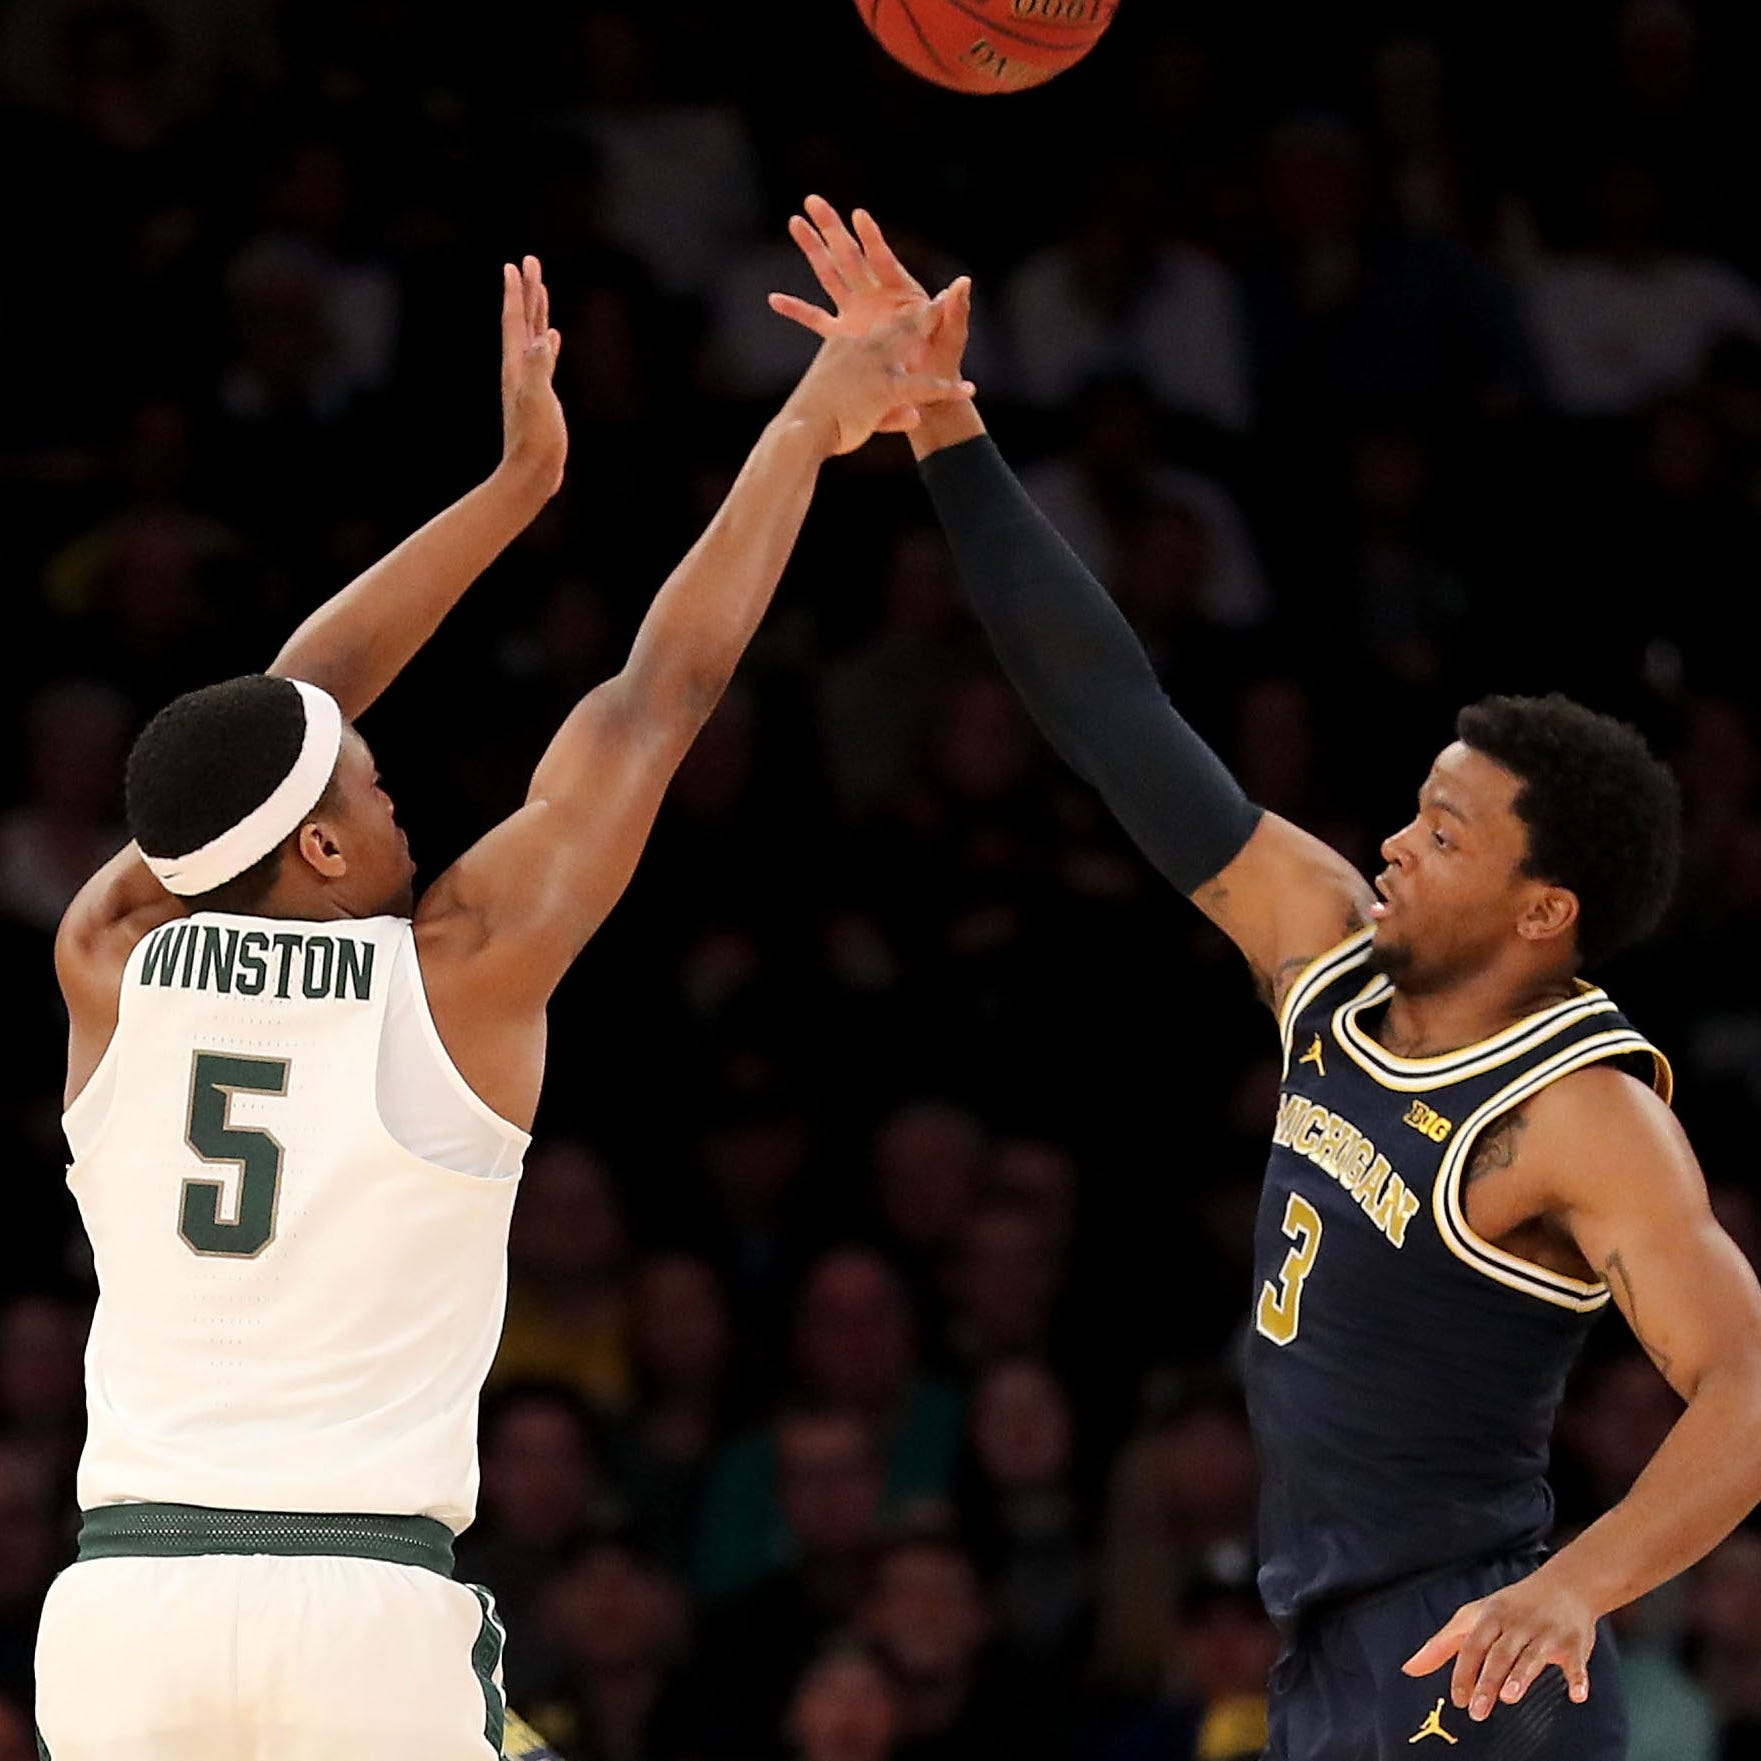 Couch: Cassius Winston can't be the Big Ten's best player until he conquers Zavier Simpson